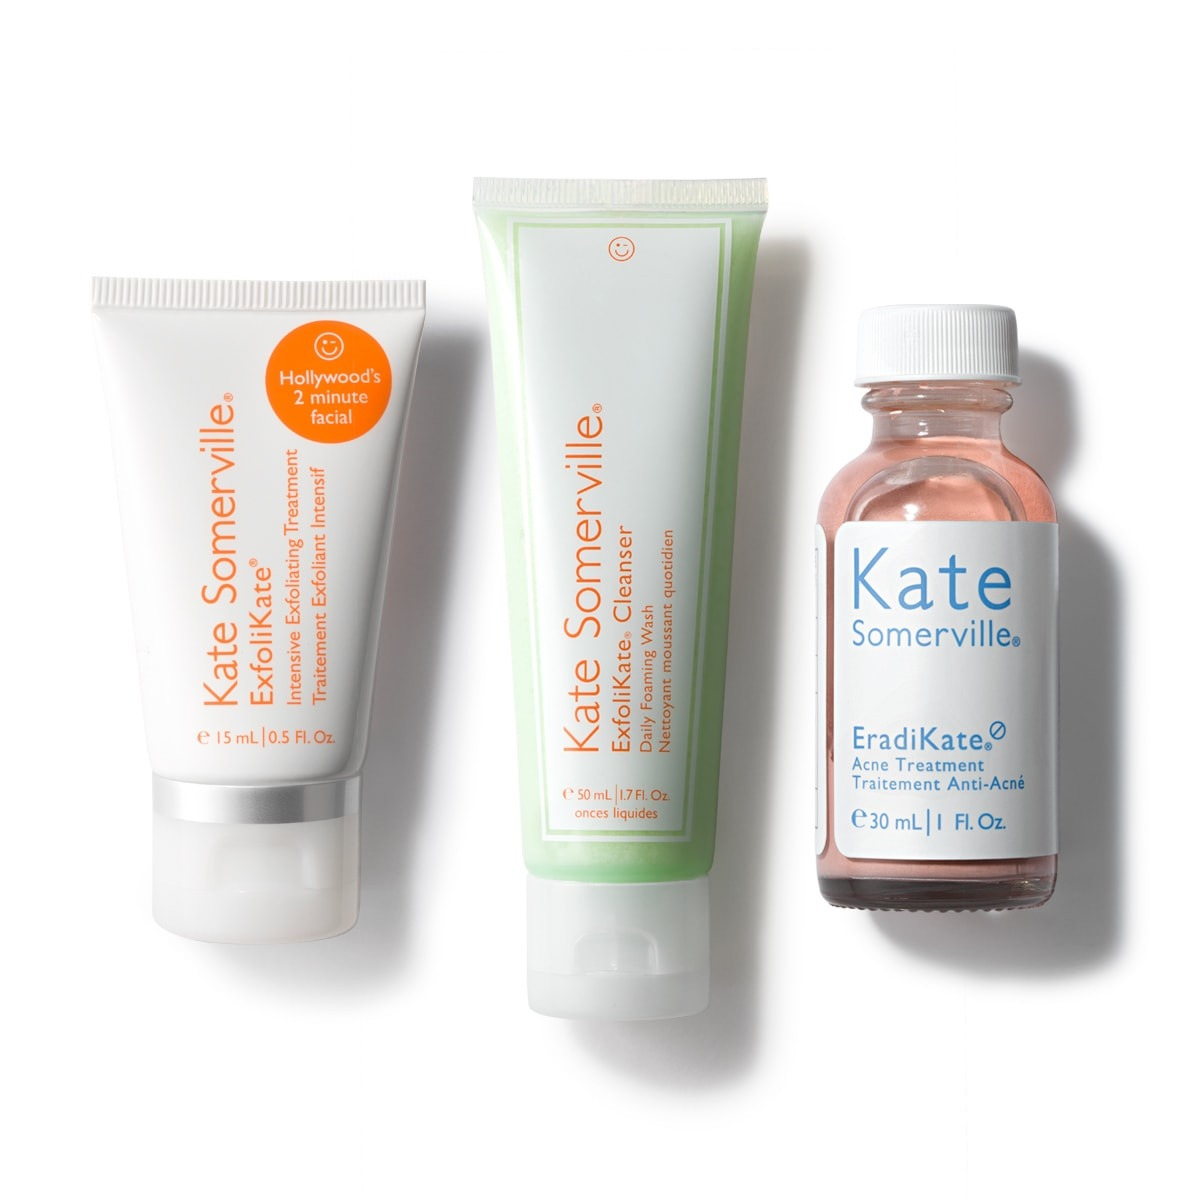 Kate Somerville: Up to 61% OFF Gift Sets + Free Best Of 2019 Minis on $120+